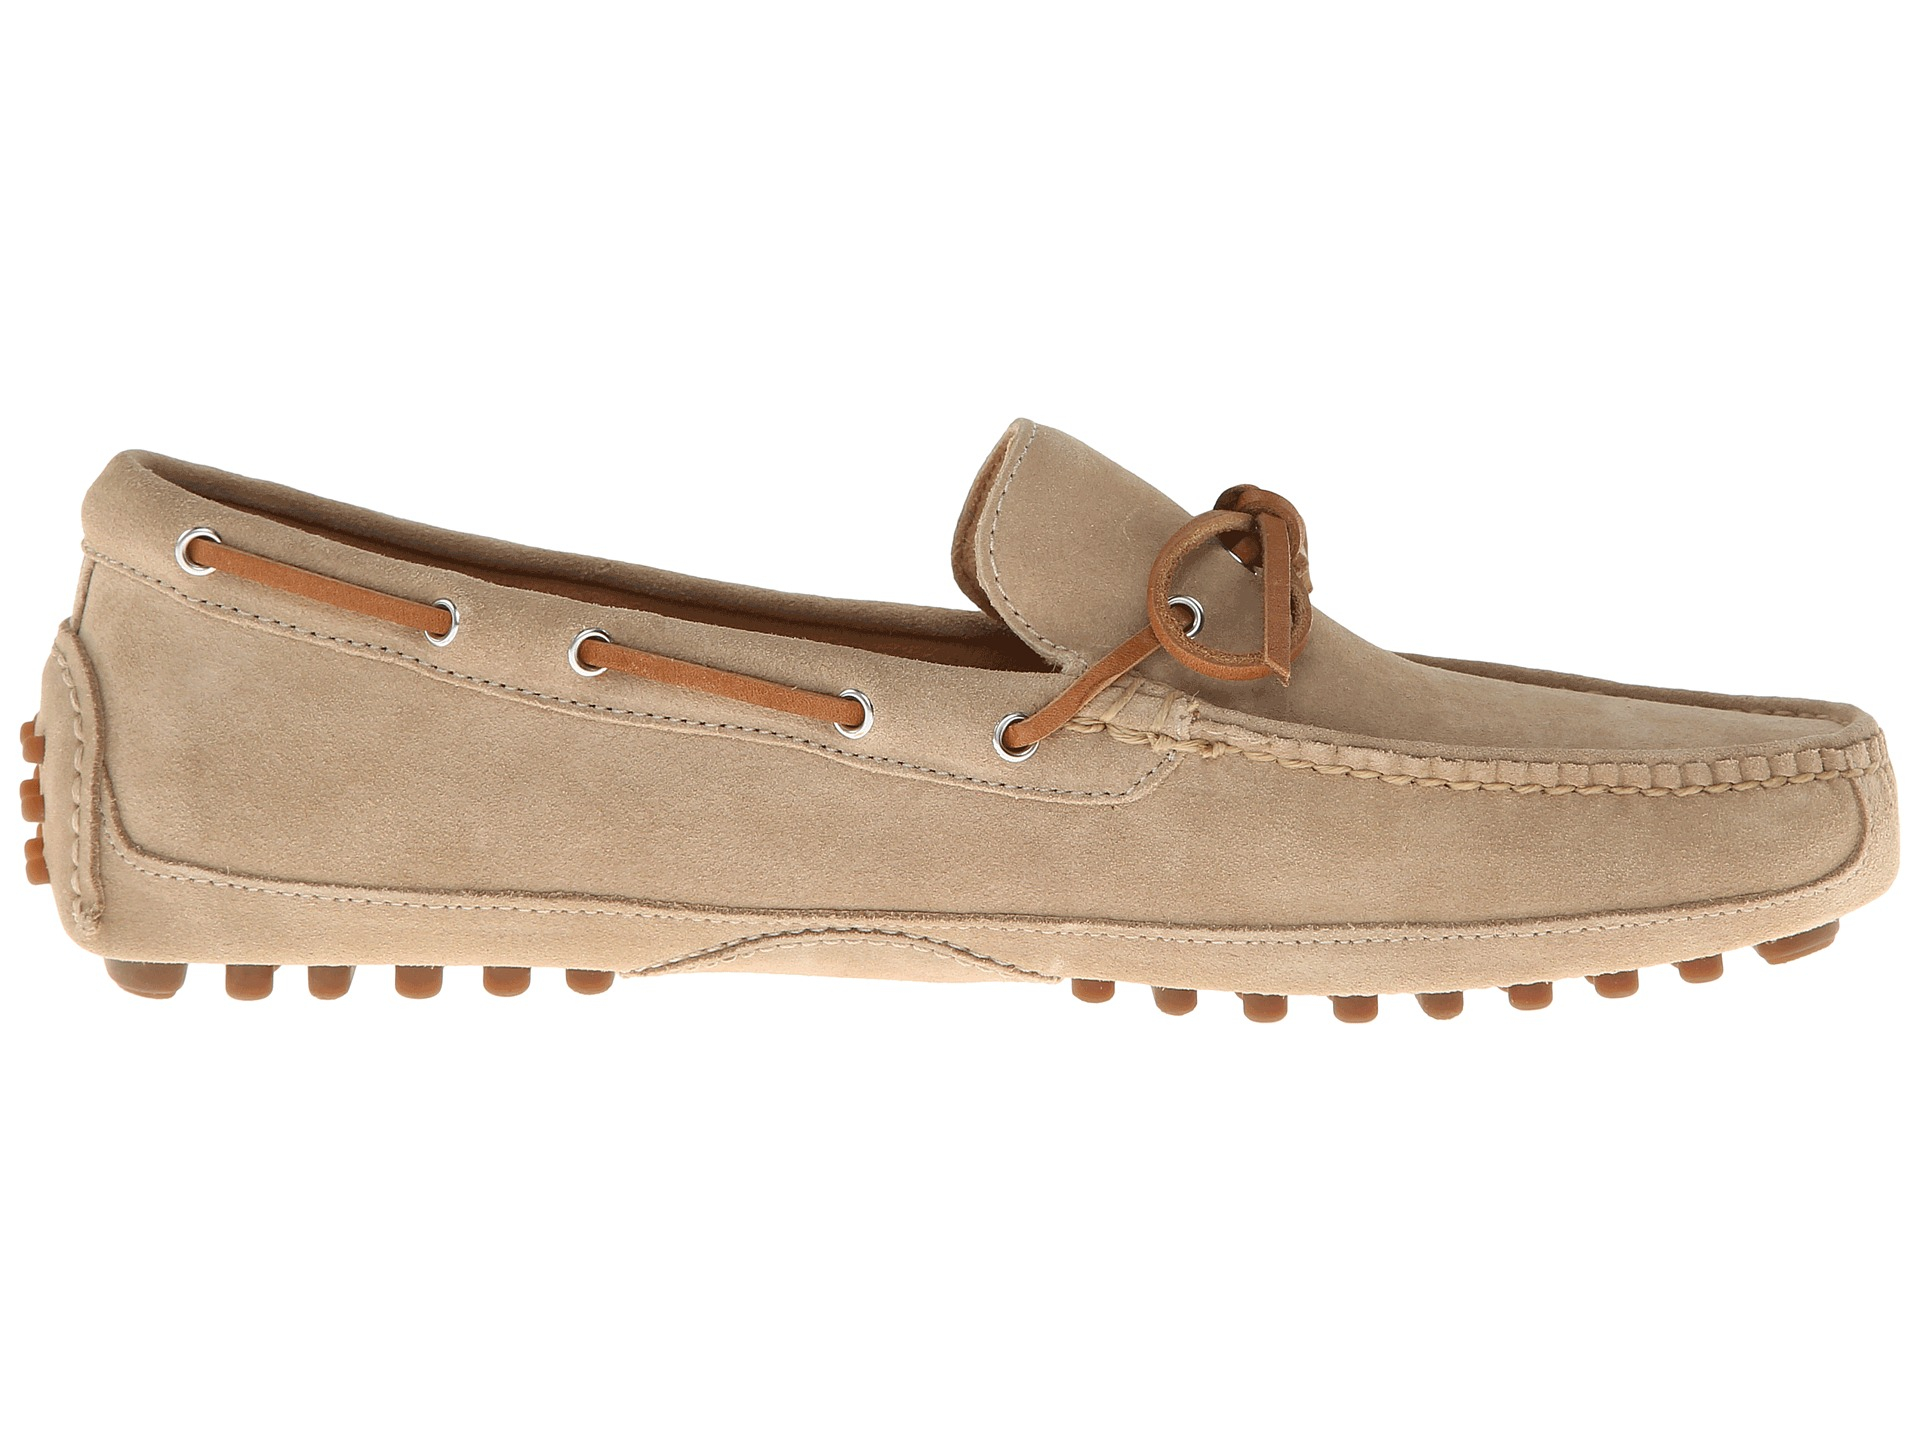 b389fc67a294e Lyst - Cole Haan Grant Canoe Camp Moc in Natural for Men